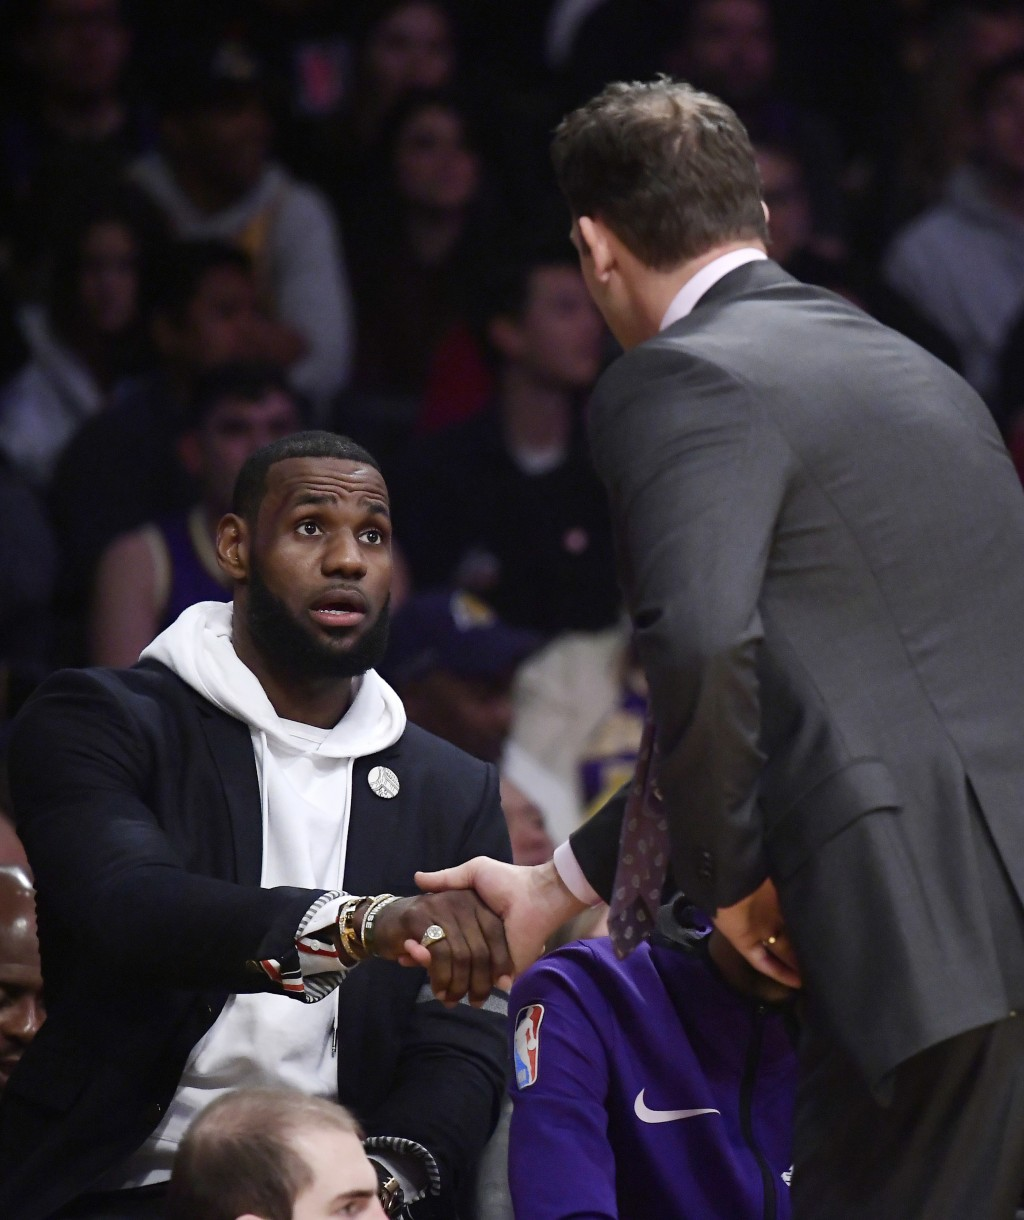 Los Angeles Lakers forward LeBron James, left, shakes hands with coach Luke Walton as they have a chat during the first half of an NBA basketball game...